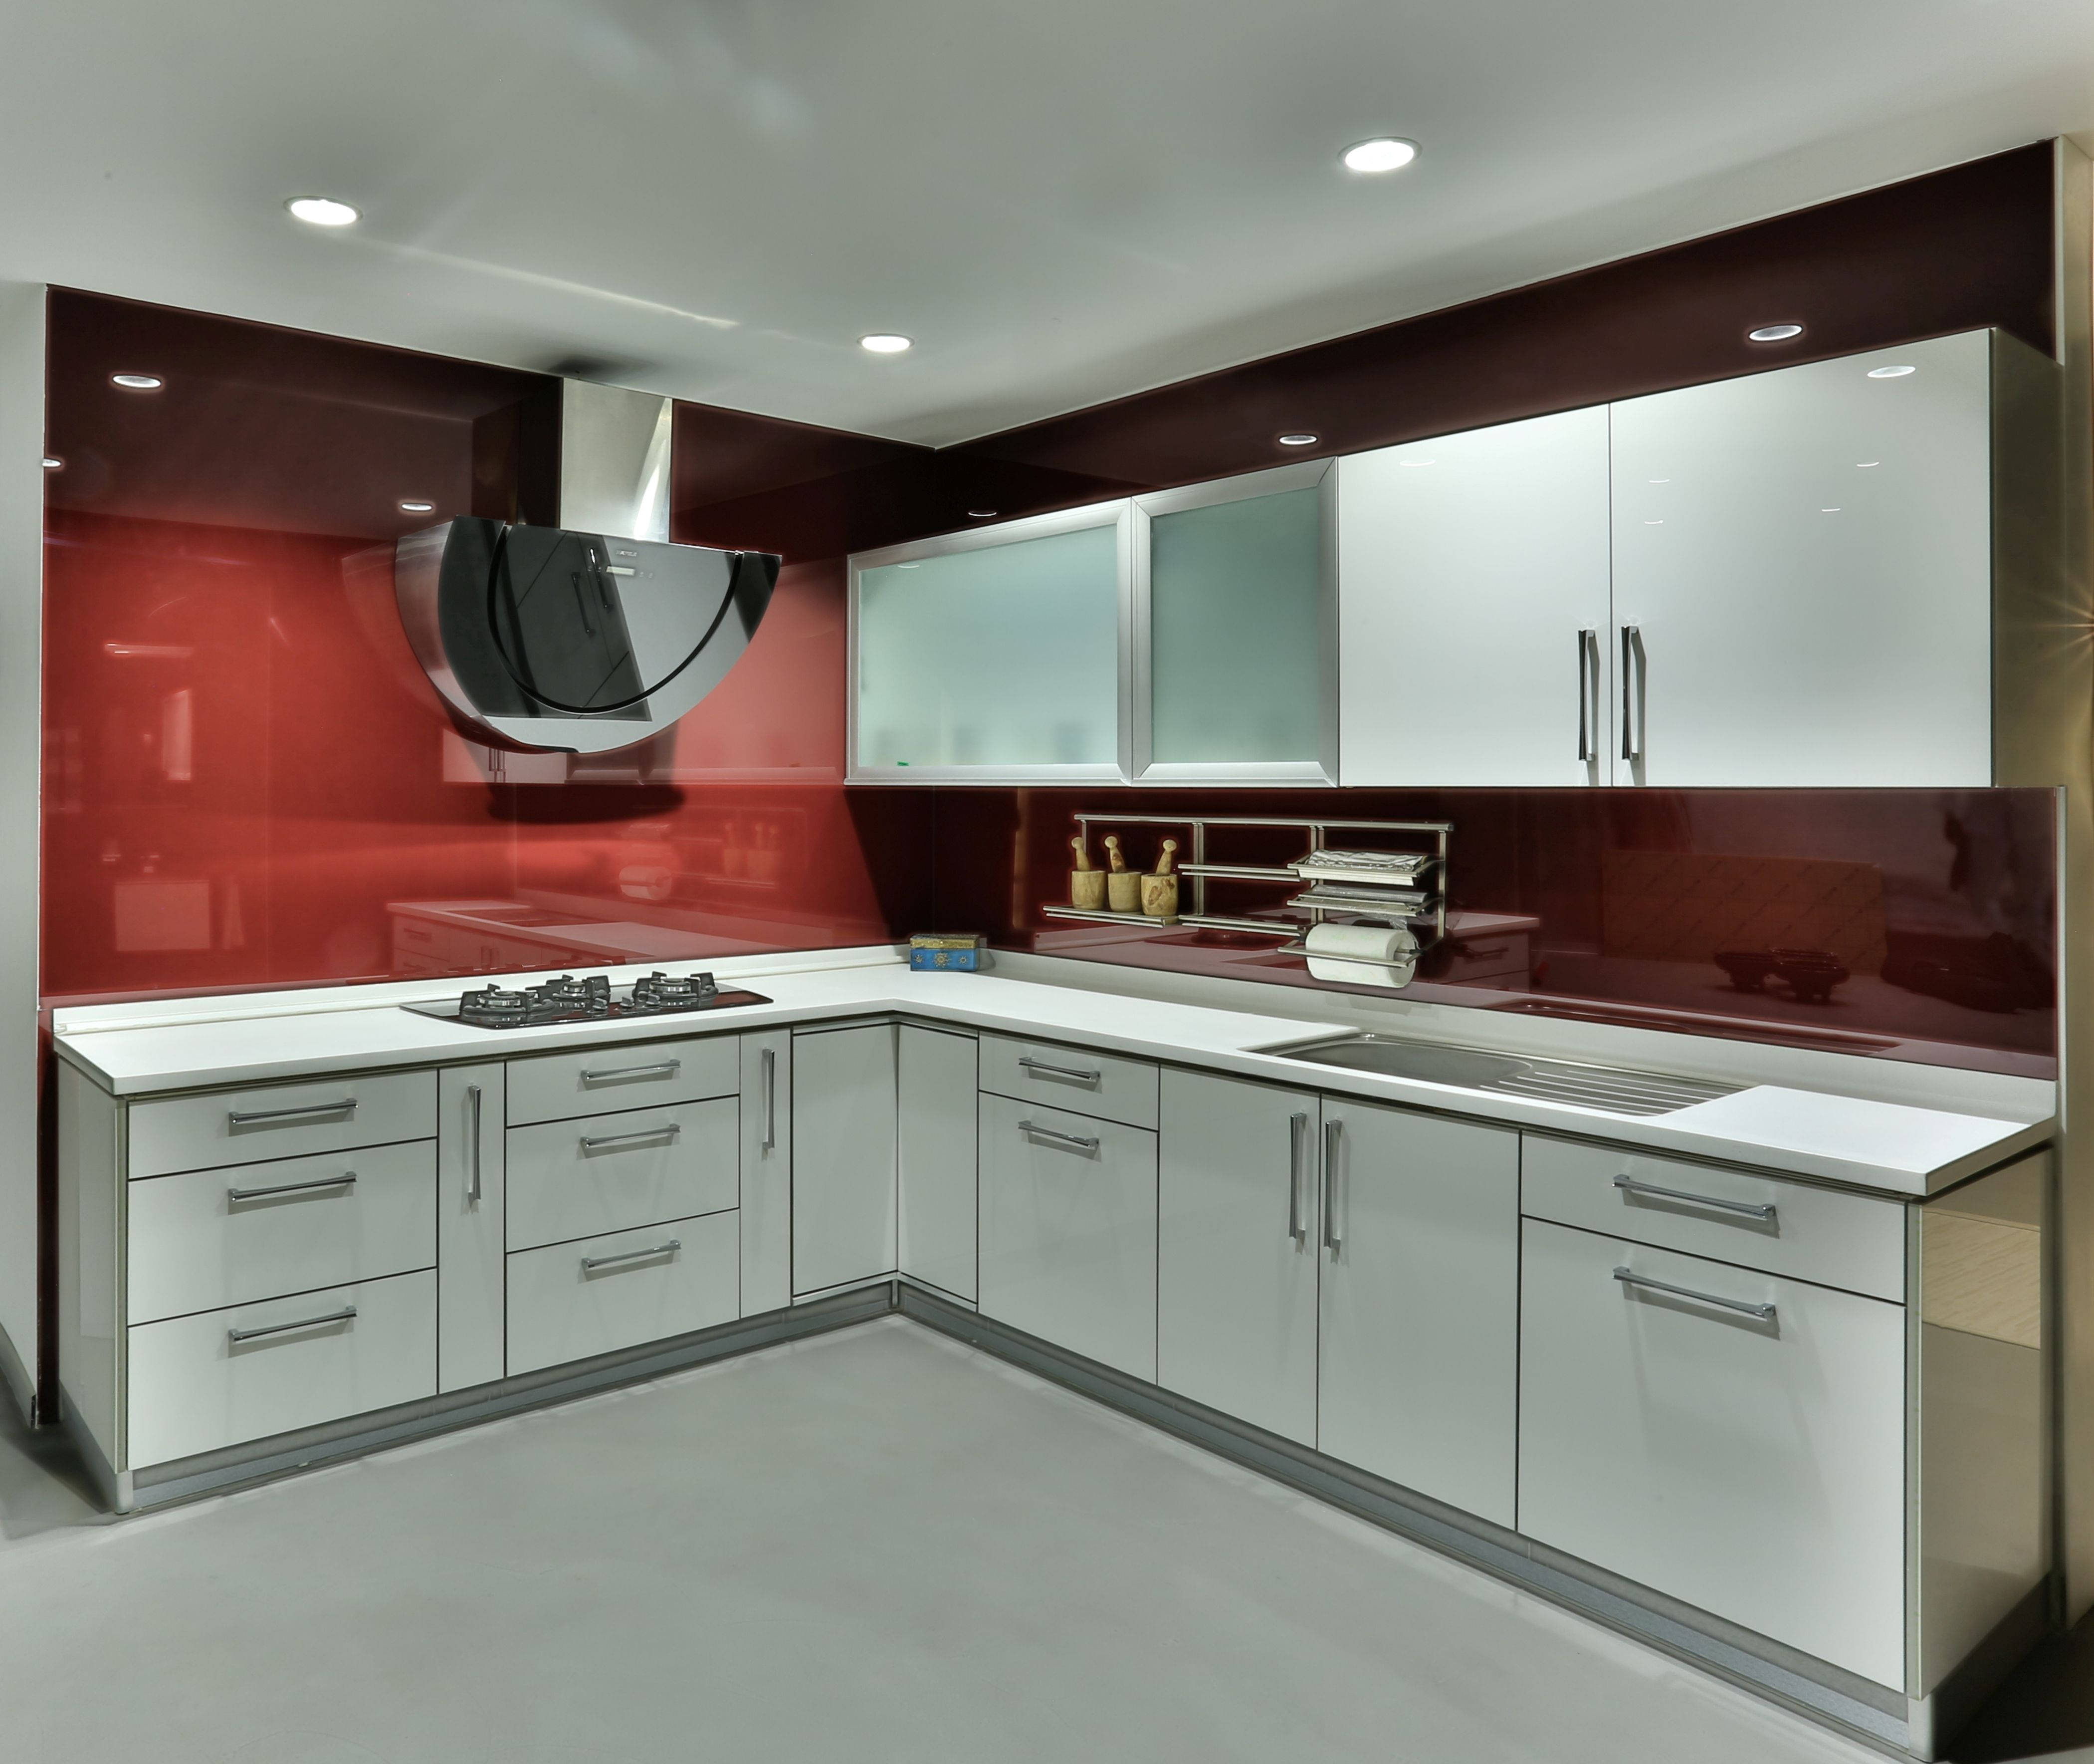 modular kitchen with hafele accessories and appliances | ideas for